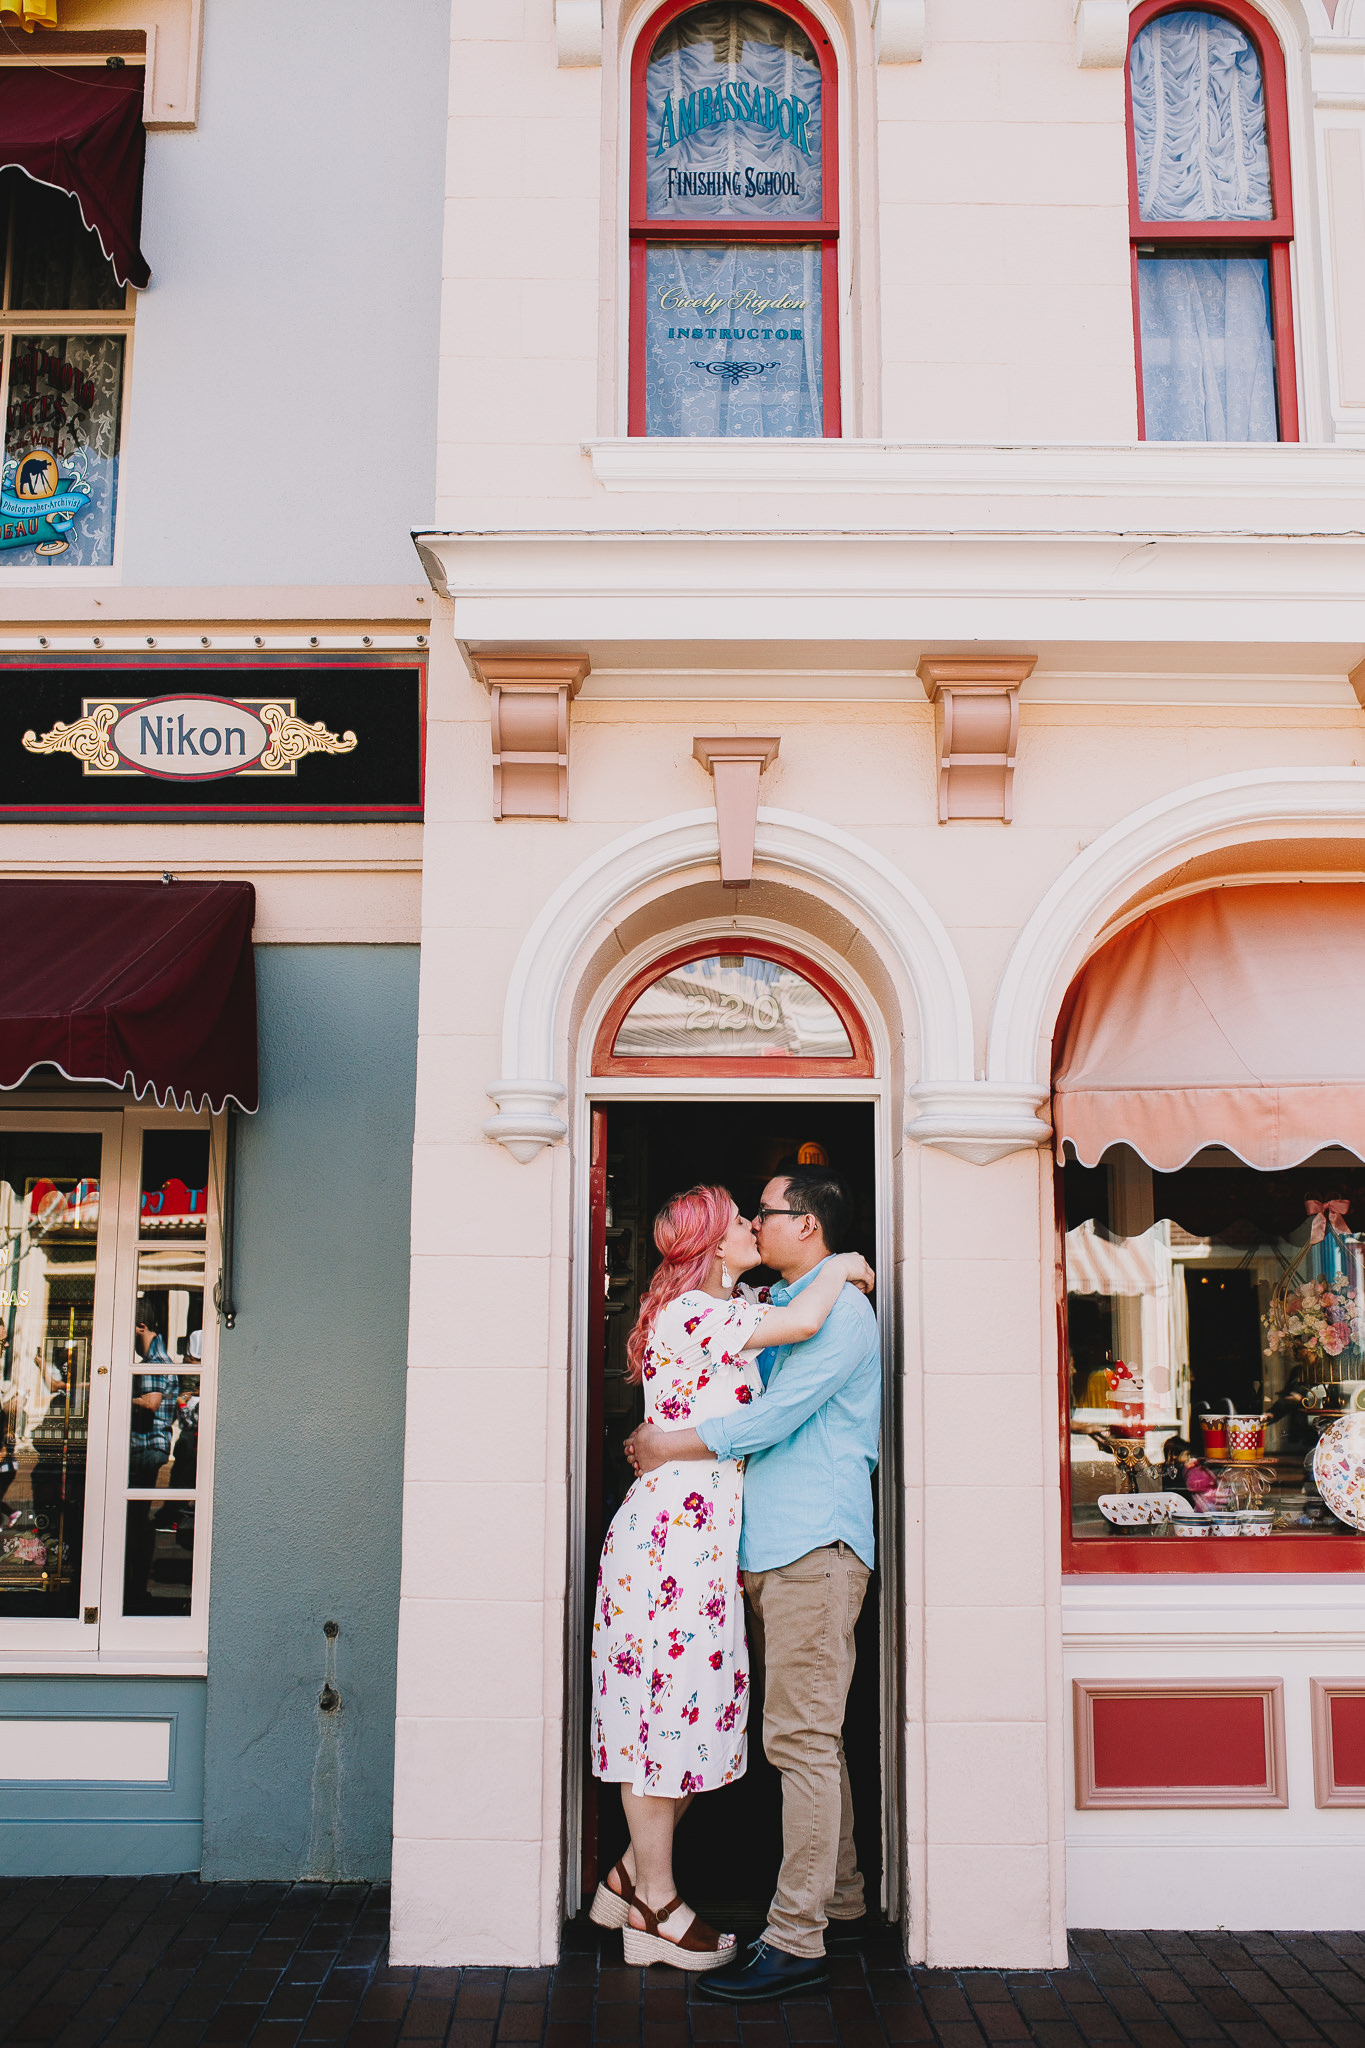 Archer Inspired Photography Disneyland Engagement Wedding Session Southern California Kayla and Kevin Lifestyle Documentary-113.jpg